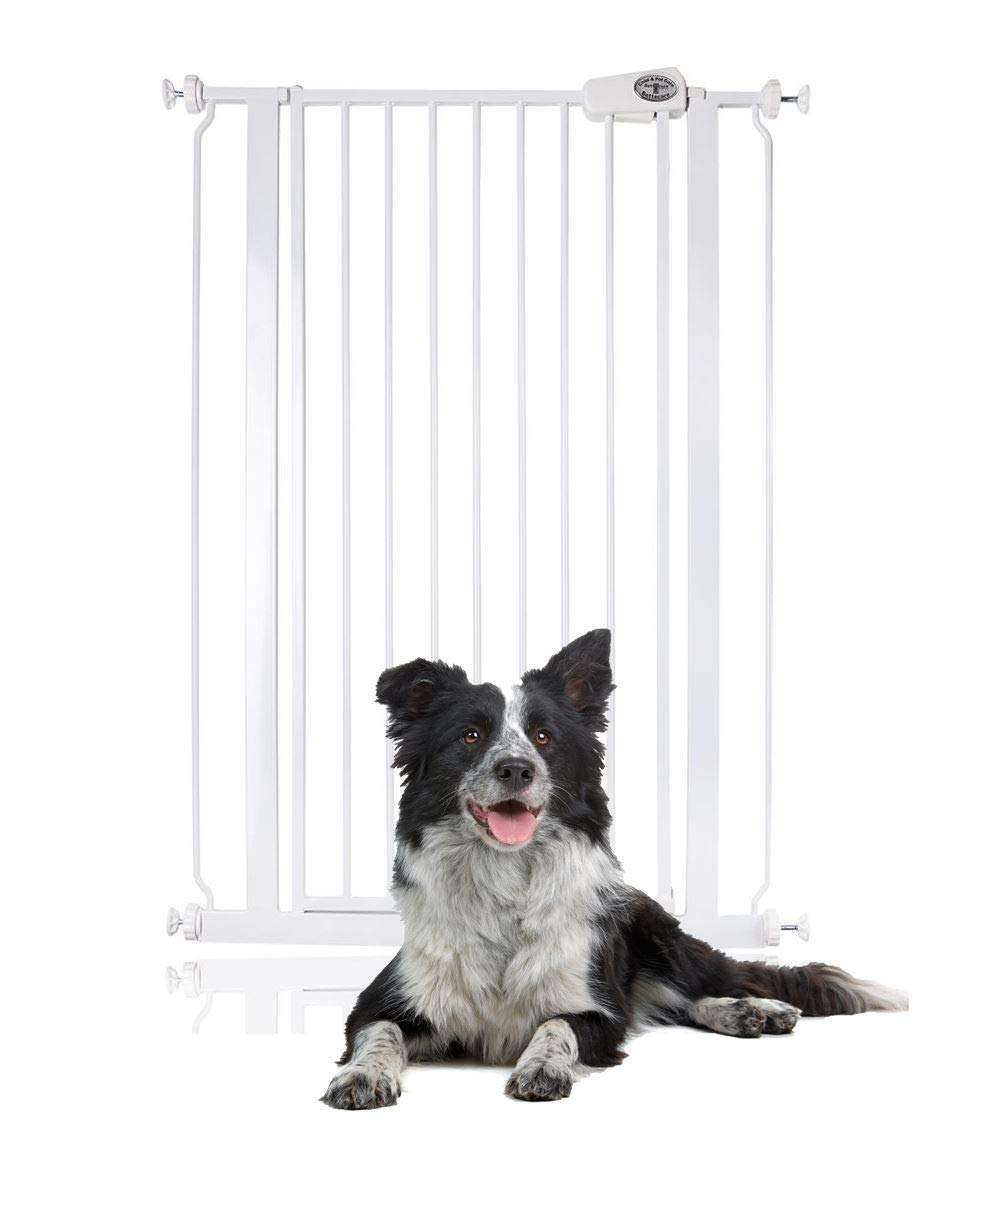 Bettacare Child and Pet Gate Pressure Fit Stair and Pet Gate 75cm - 147.5cm (113.8cm - 121.4cm, White) Bettacare Pressure Fitted White Metal Gate Double Locking Mechanism 2